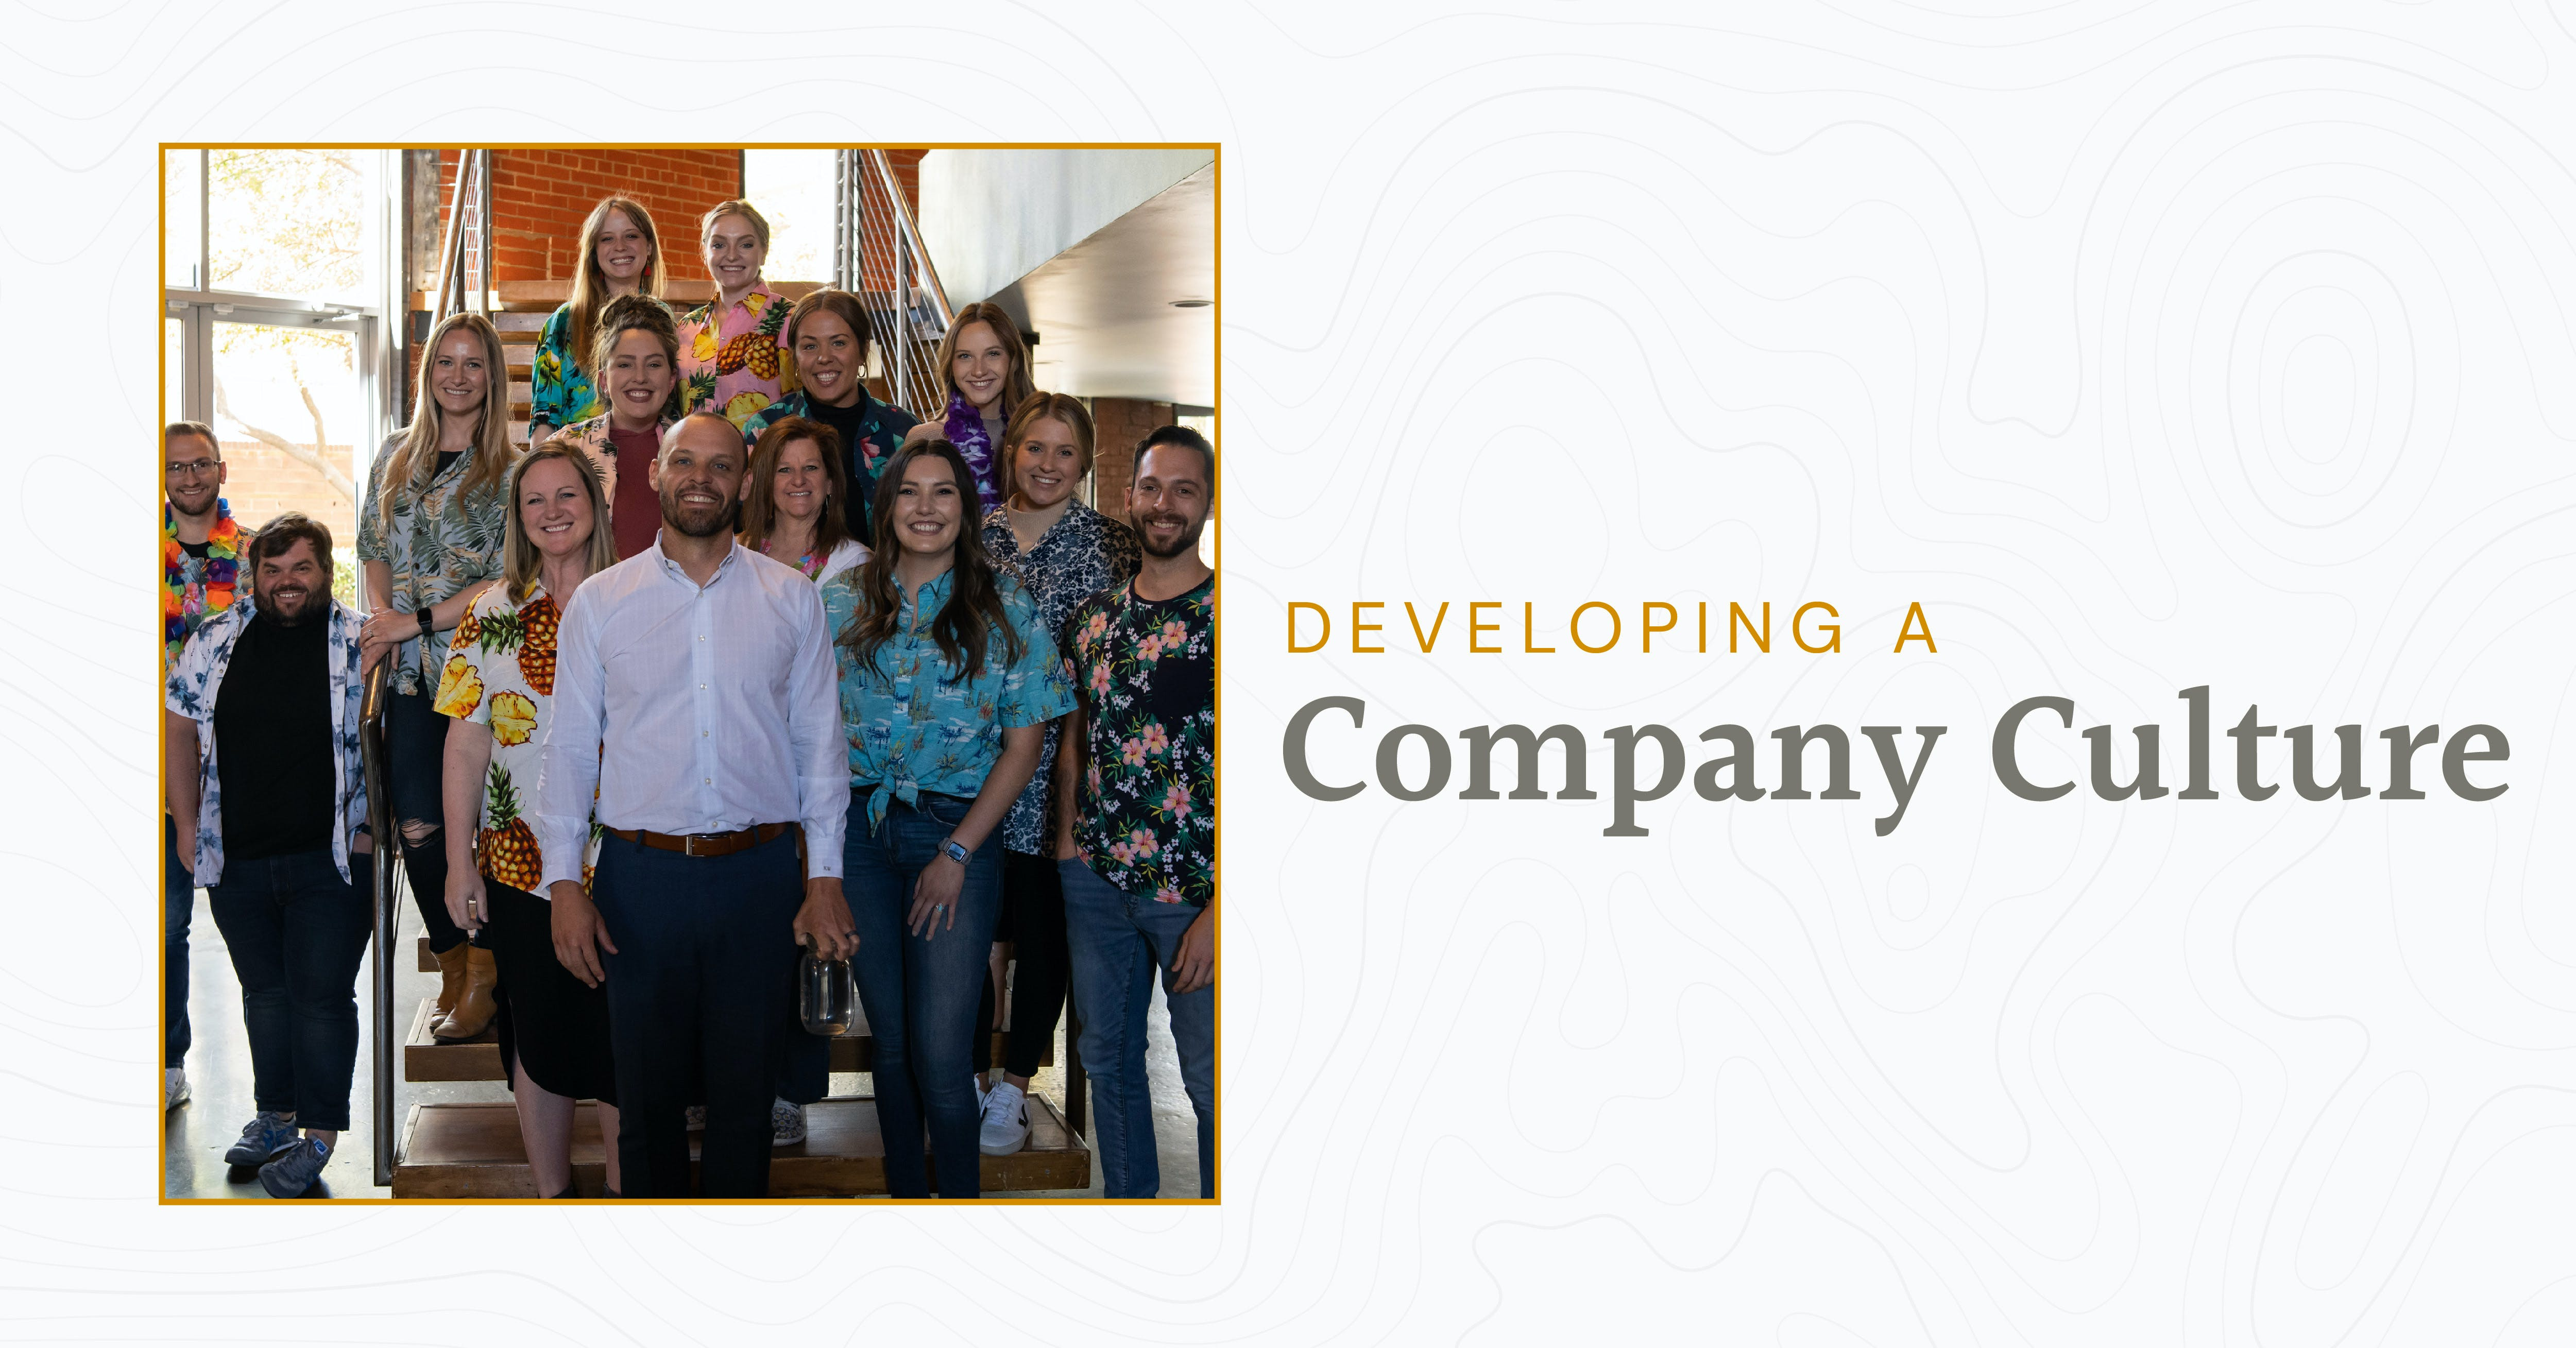 Developing a Company Culture image